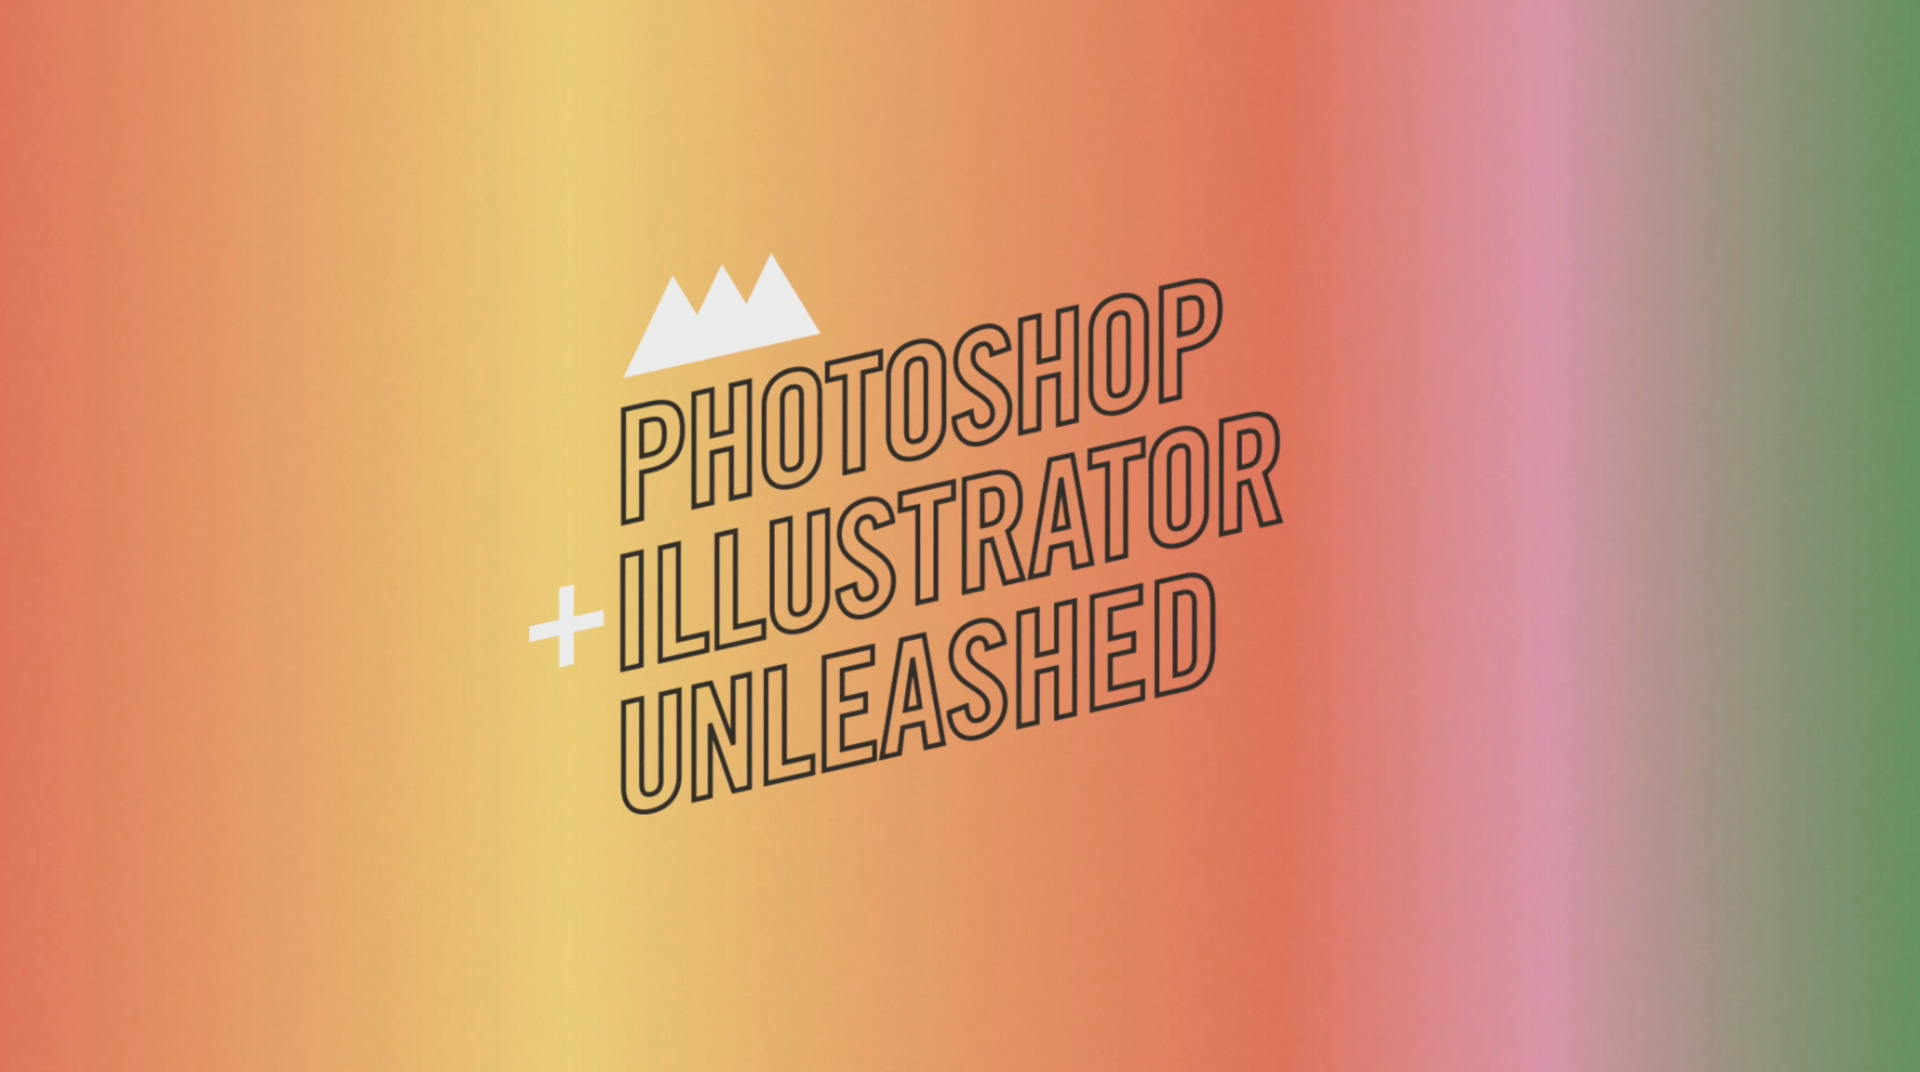 [VIP] School of Motion – Photoshop and Illustrator Unleashed